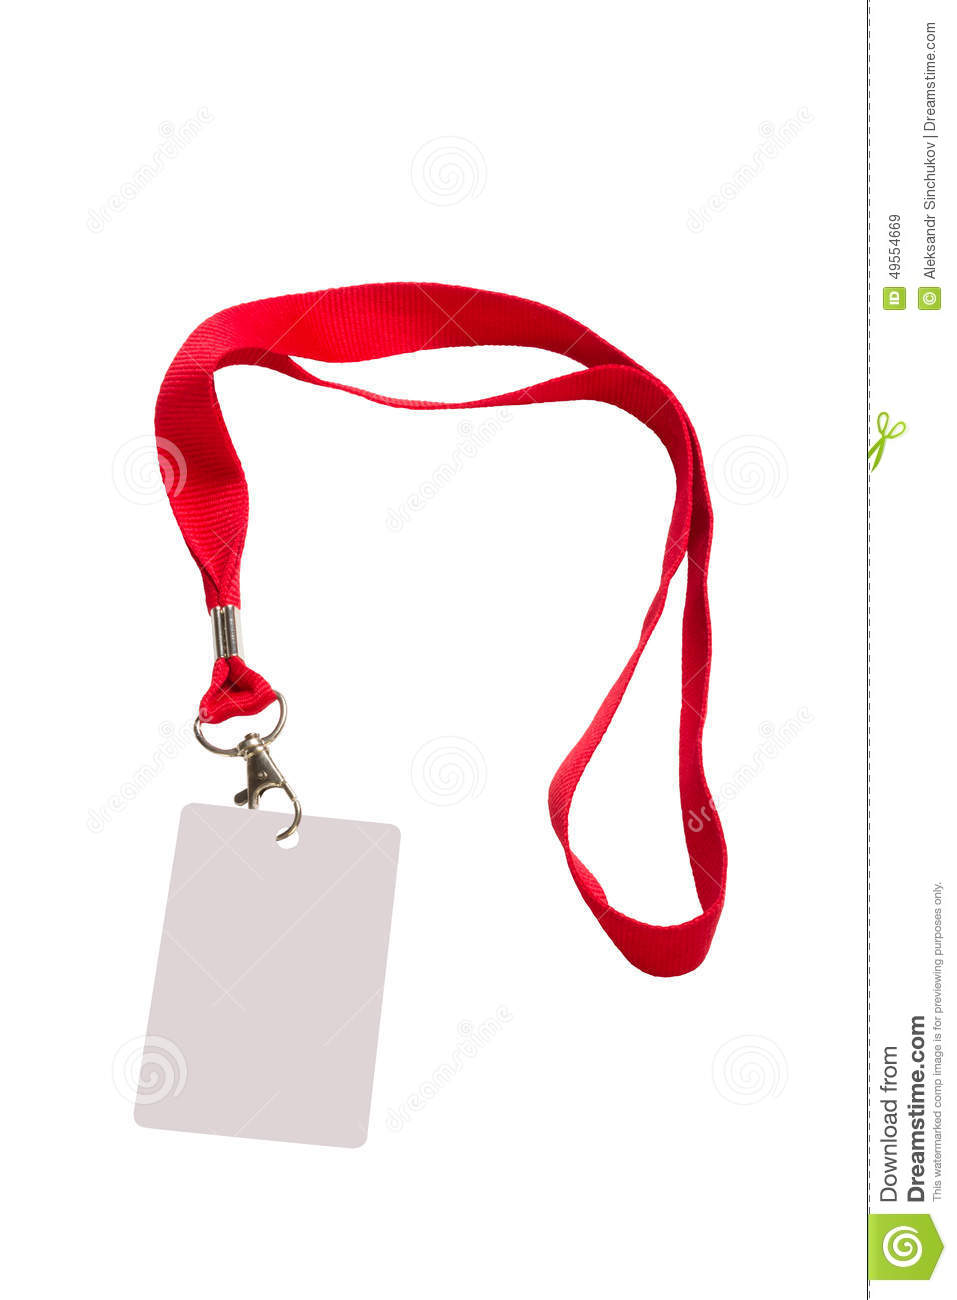 Pass with red strap